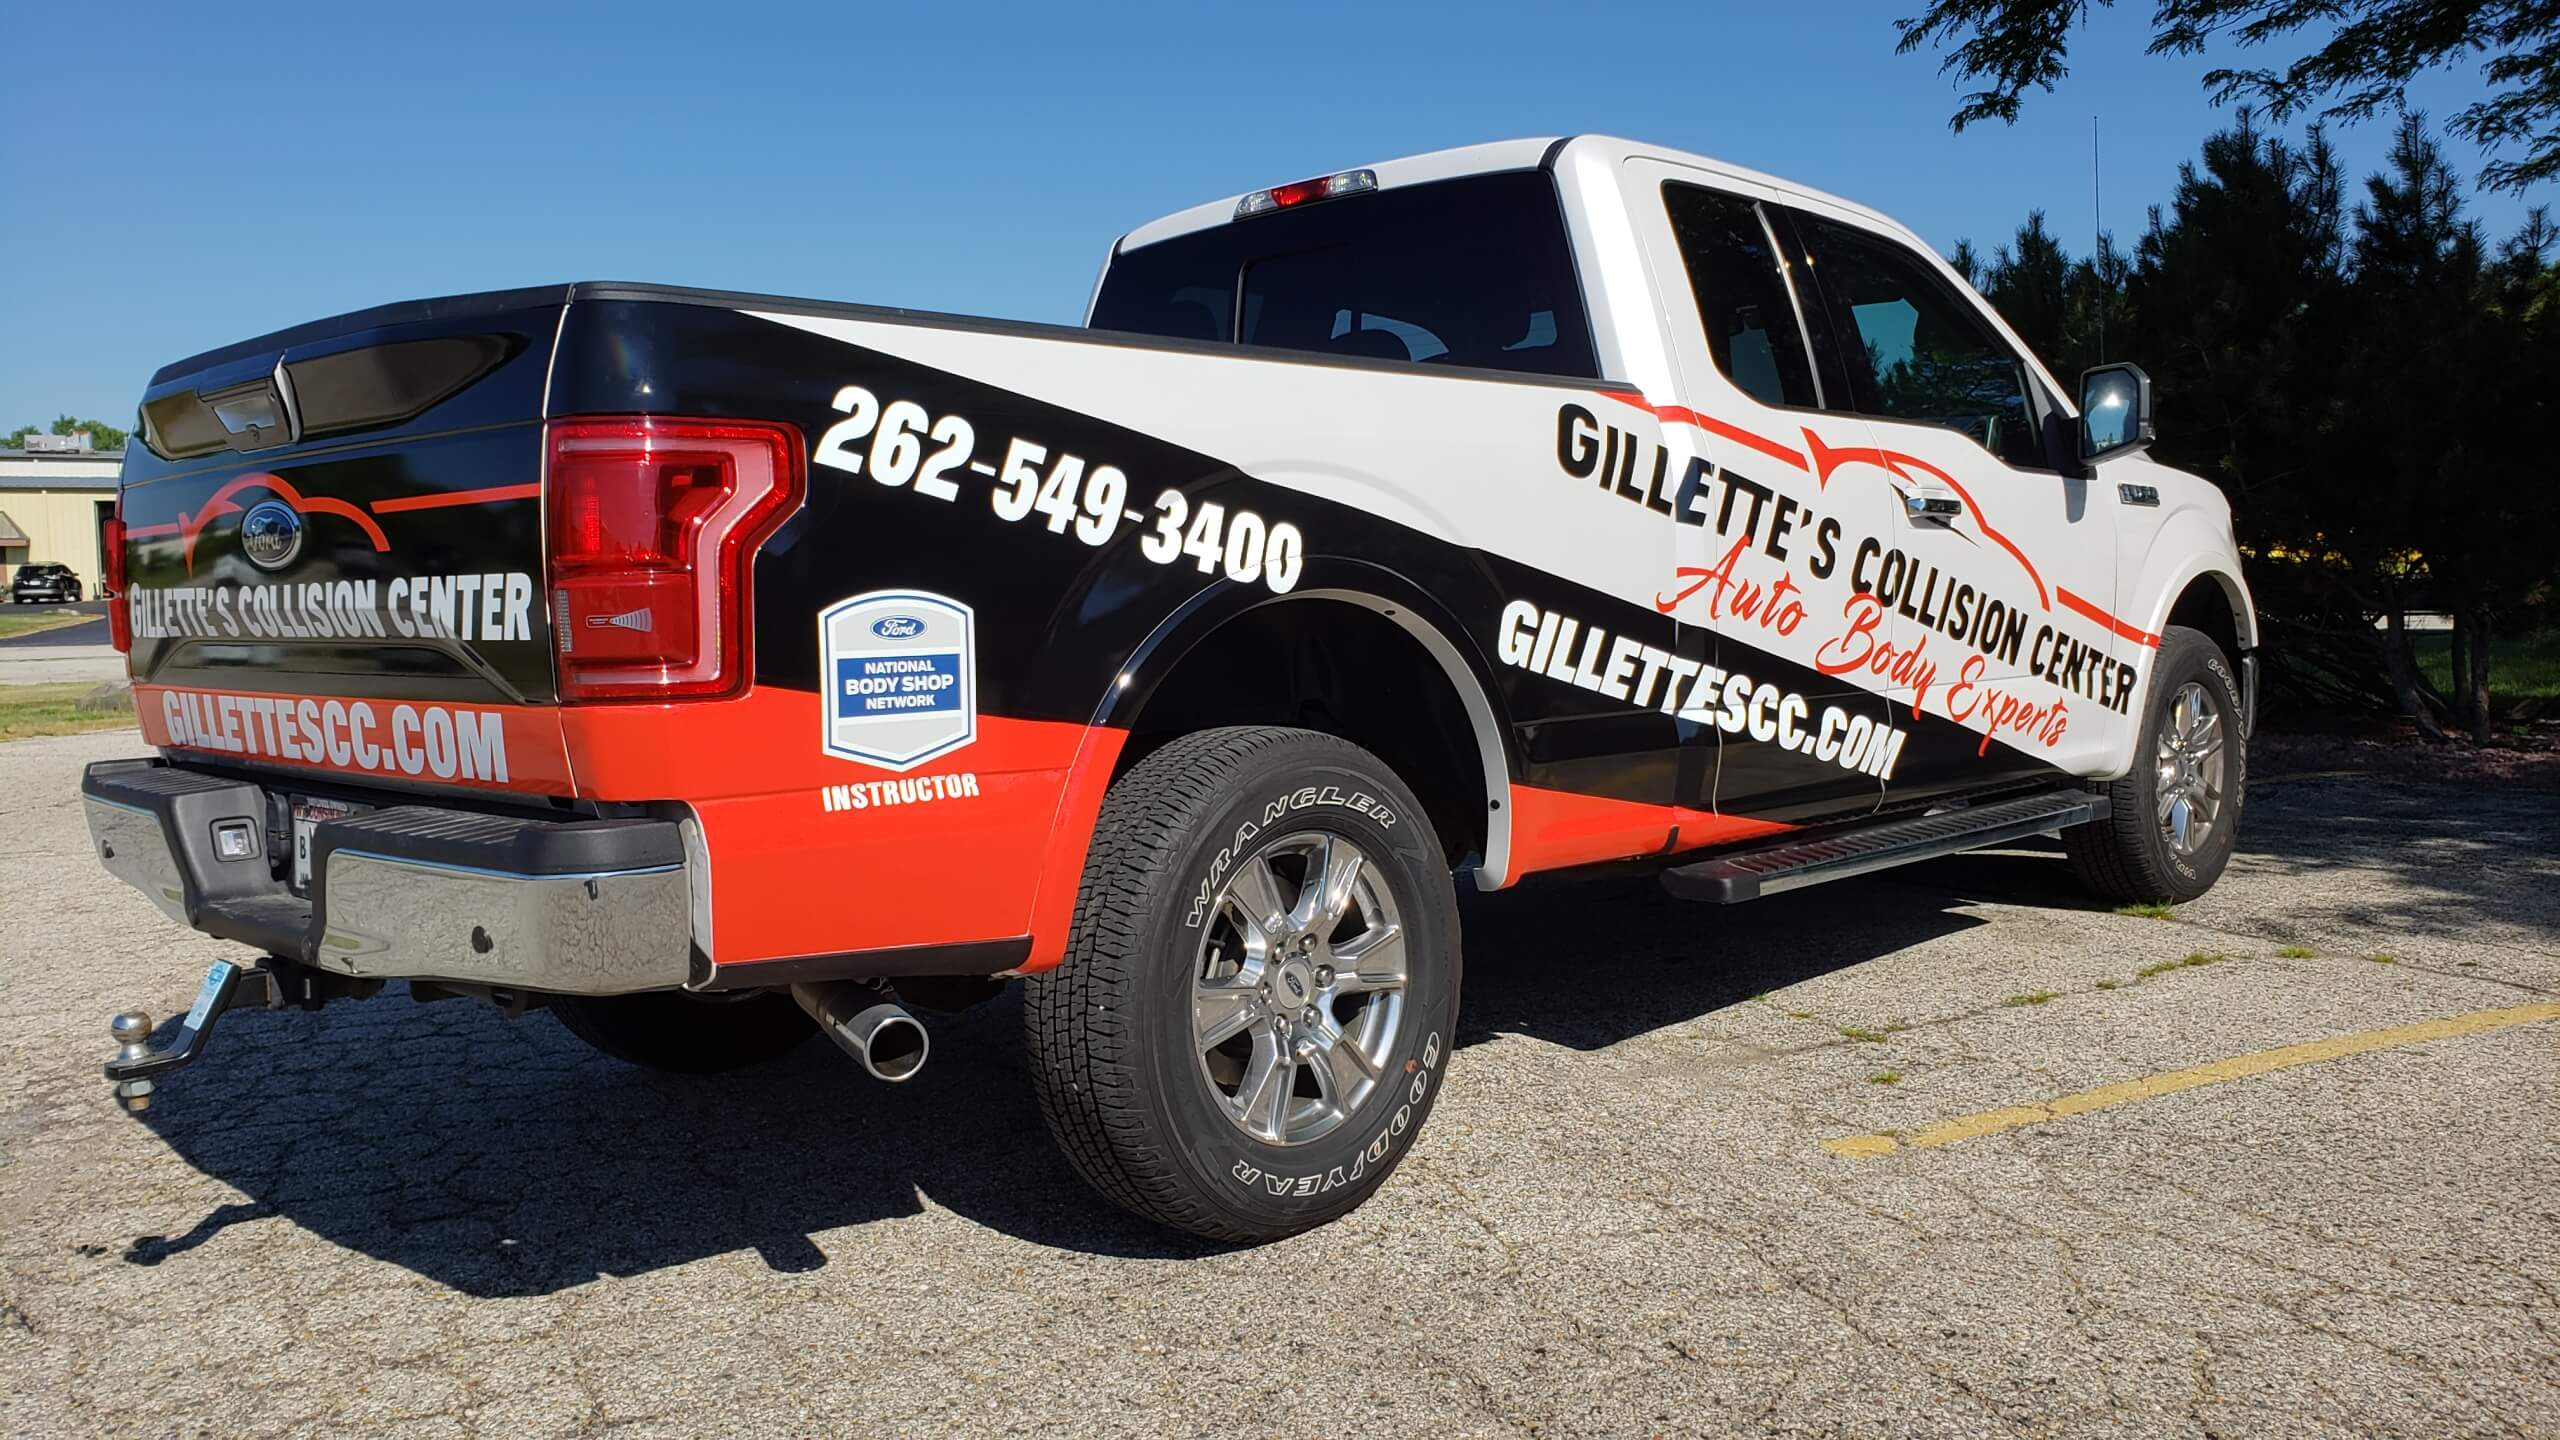 Red, White, and Black truck with vinyl graphics